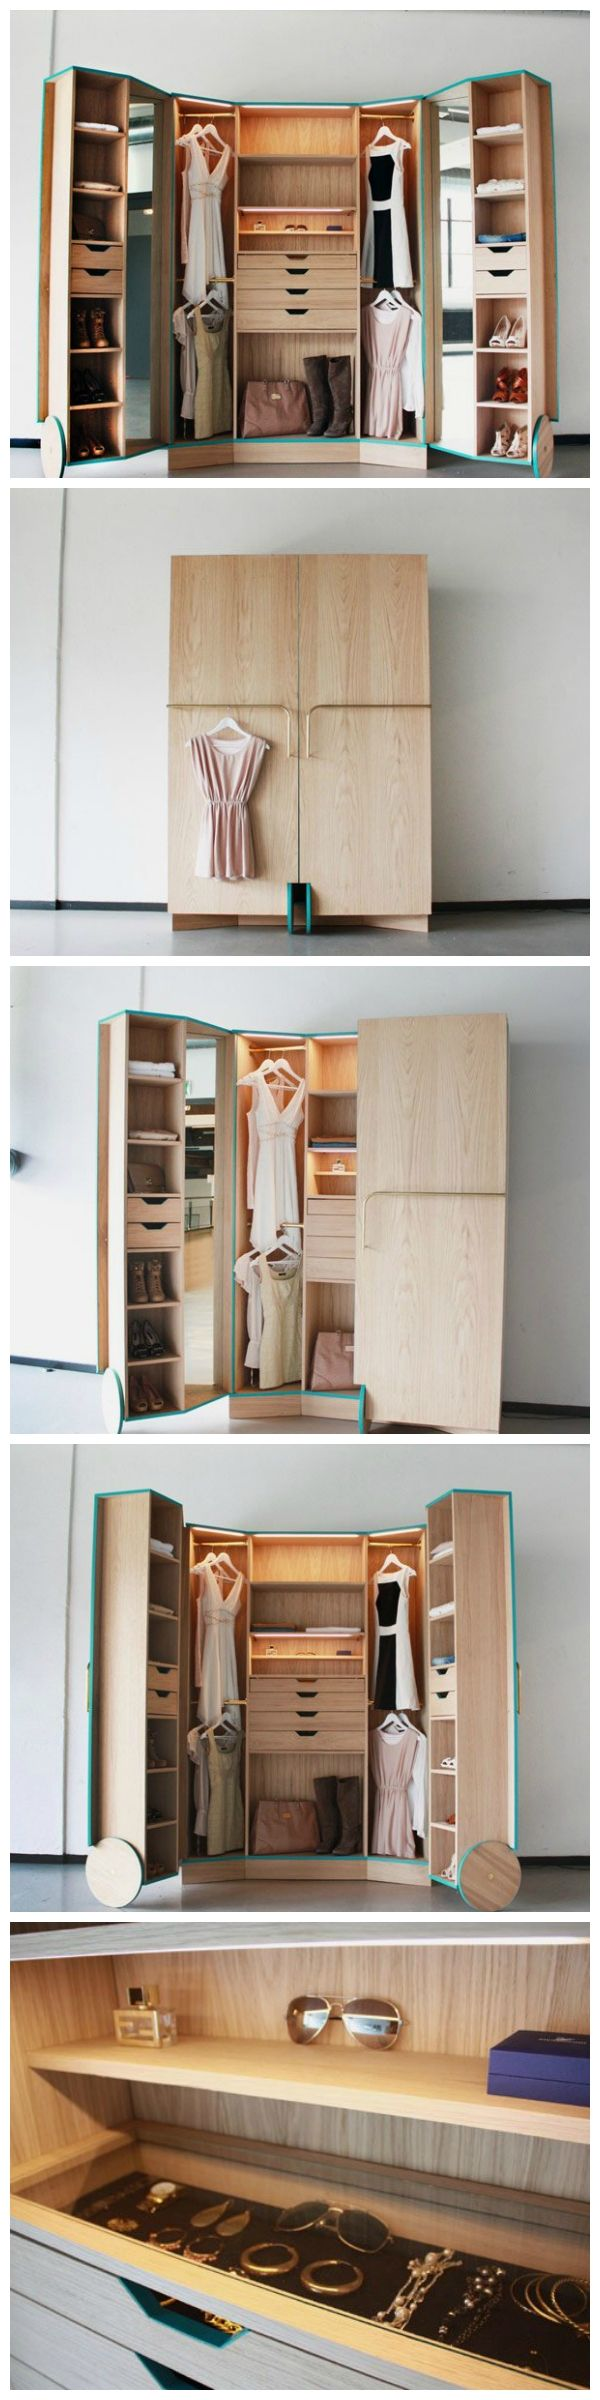 Good Solution for Spacious Storage with Walk-in Closet | B ...